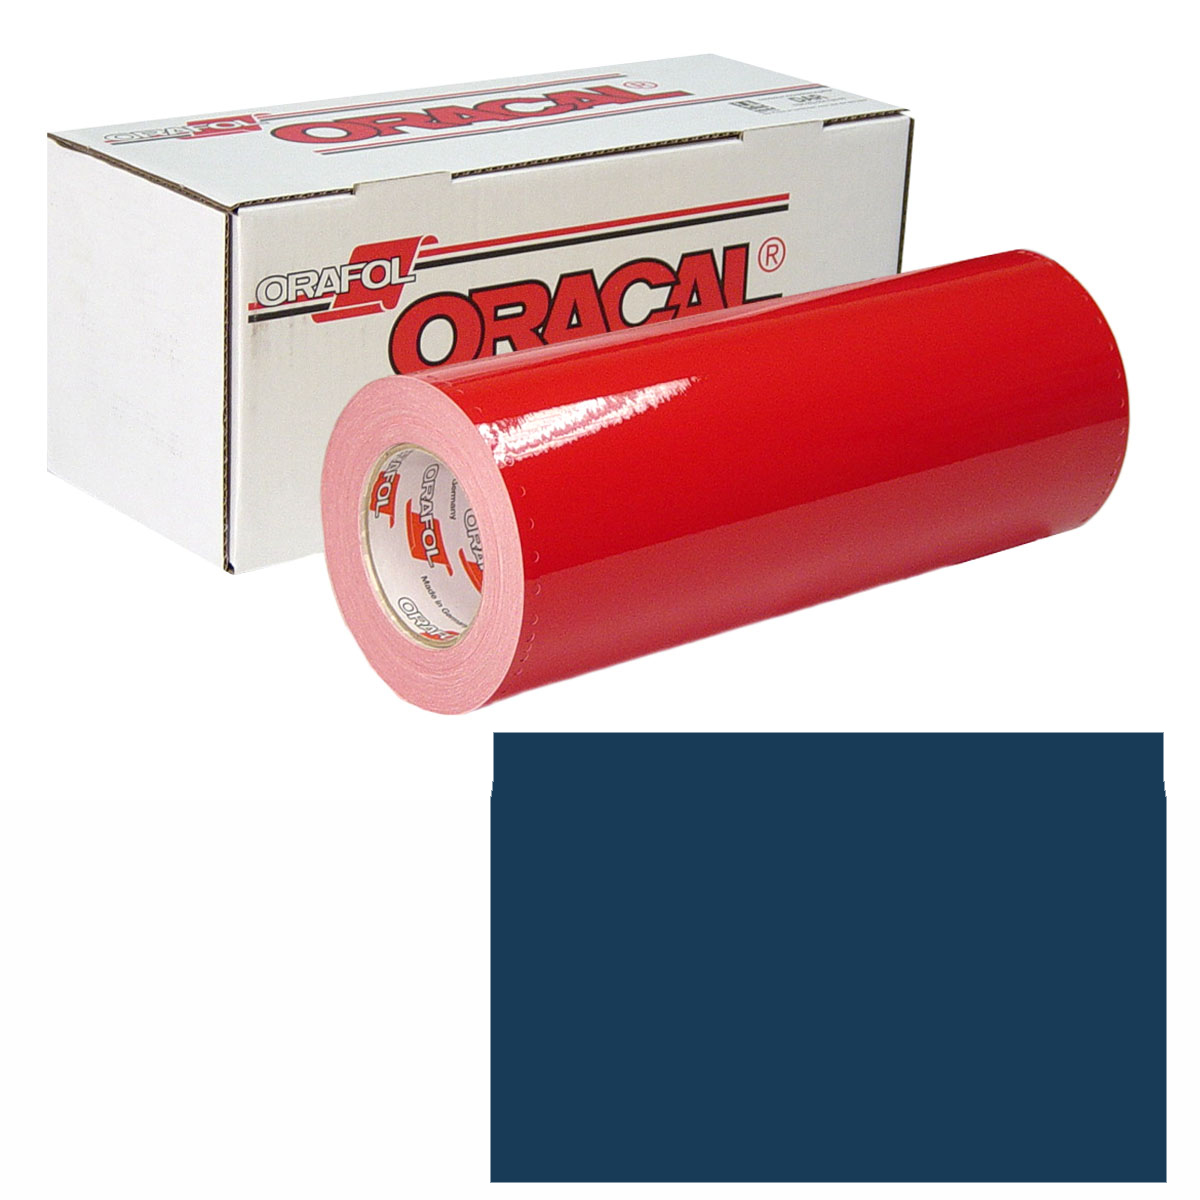 ORACAL 951M Unp 24In X 50Yd 189 Midnight Met